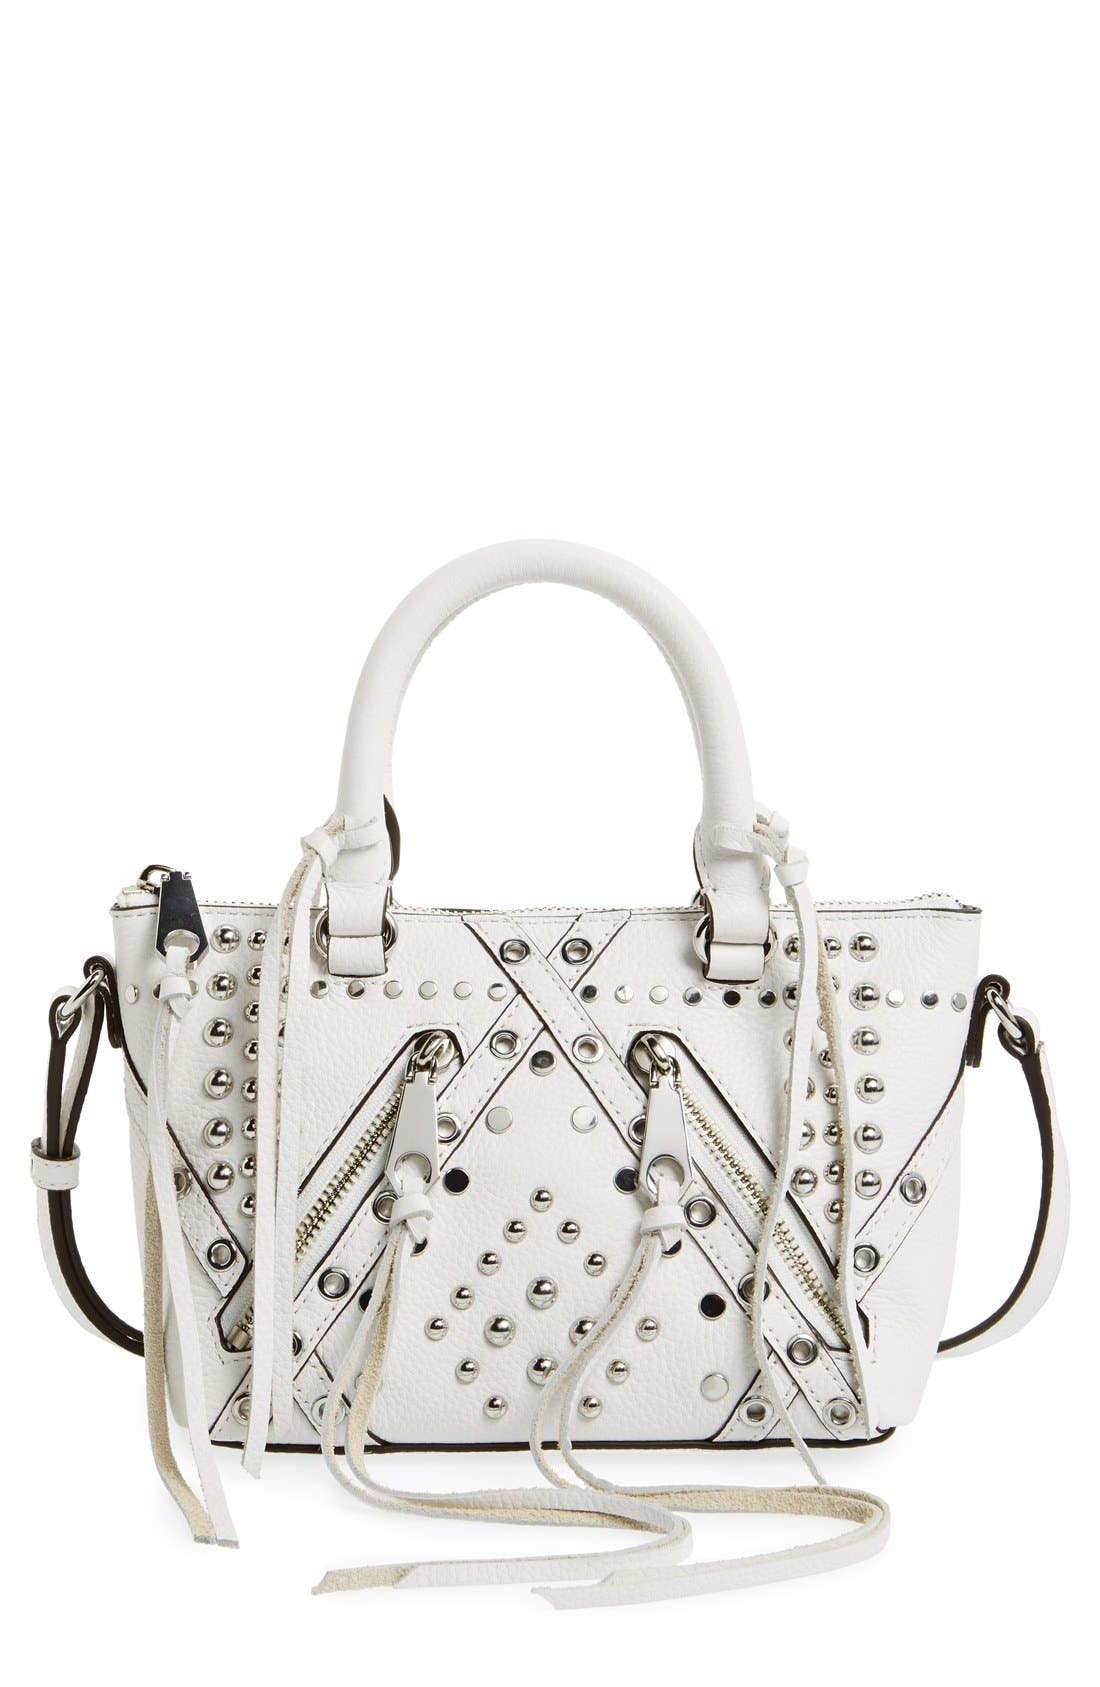 Alternate Image 1 Selected - Rebecca Minkoff 'Micro Moto' Satchel